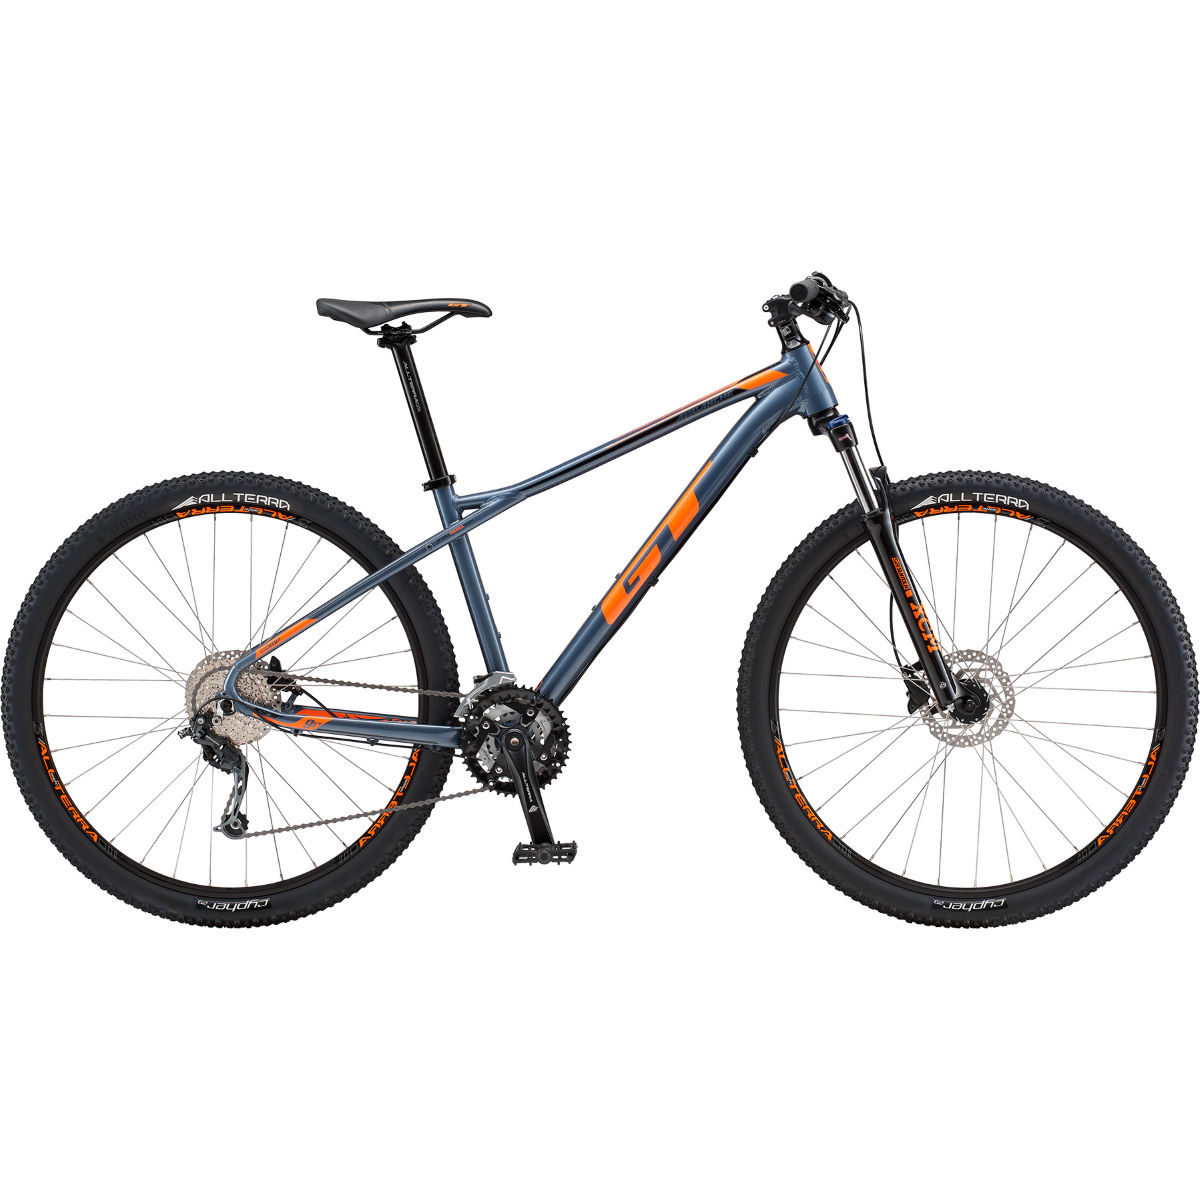 VTT semi-rigide GT Avalanche Comp 27.5 - Small Stock Bike Blue Steel